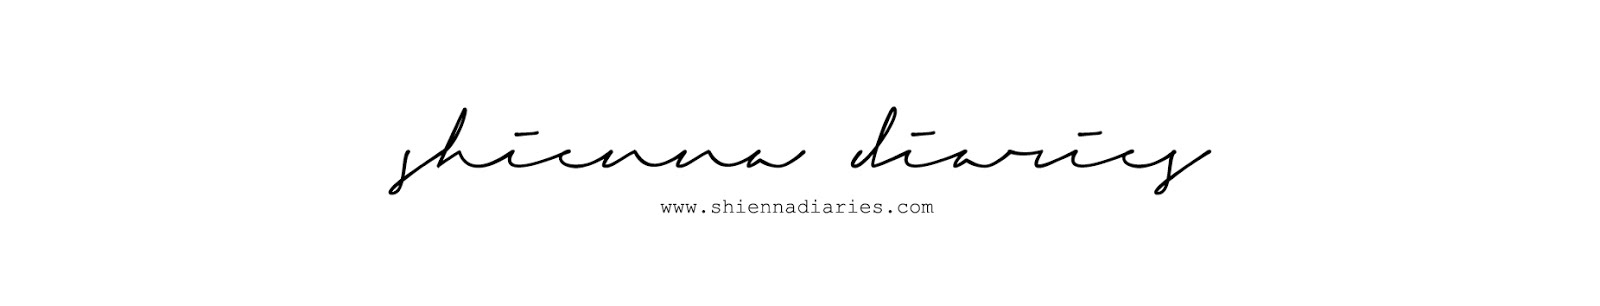 Shienna Diaries | Blog